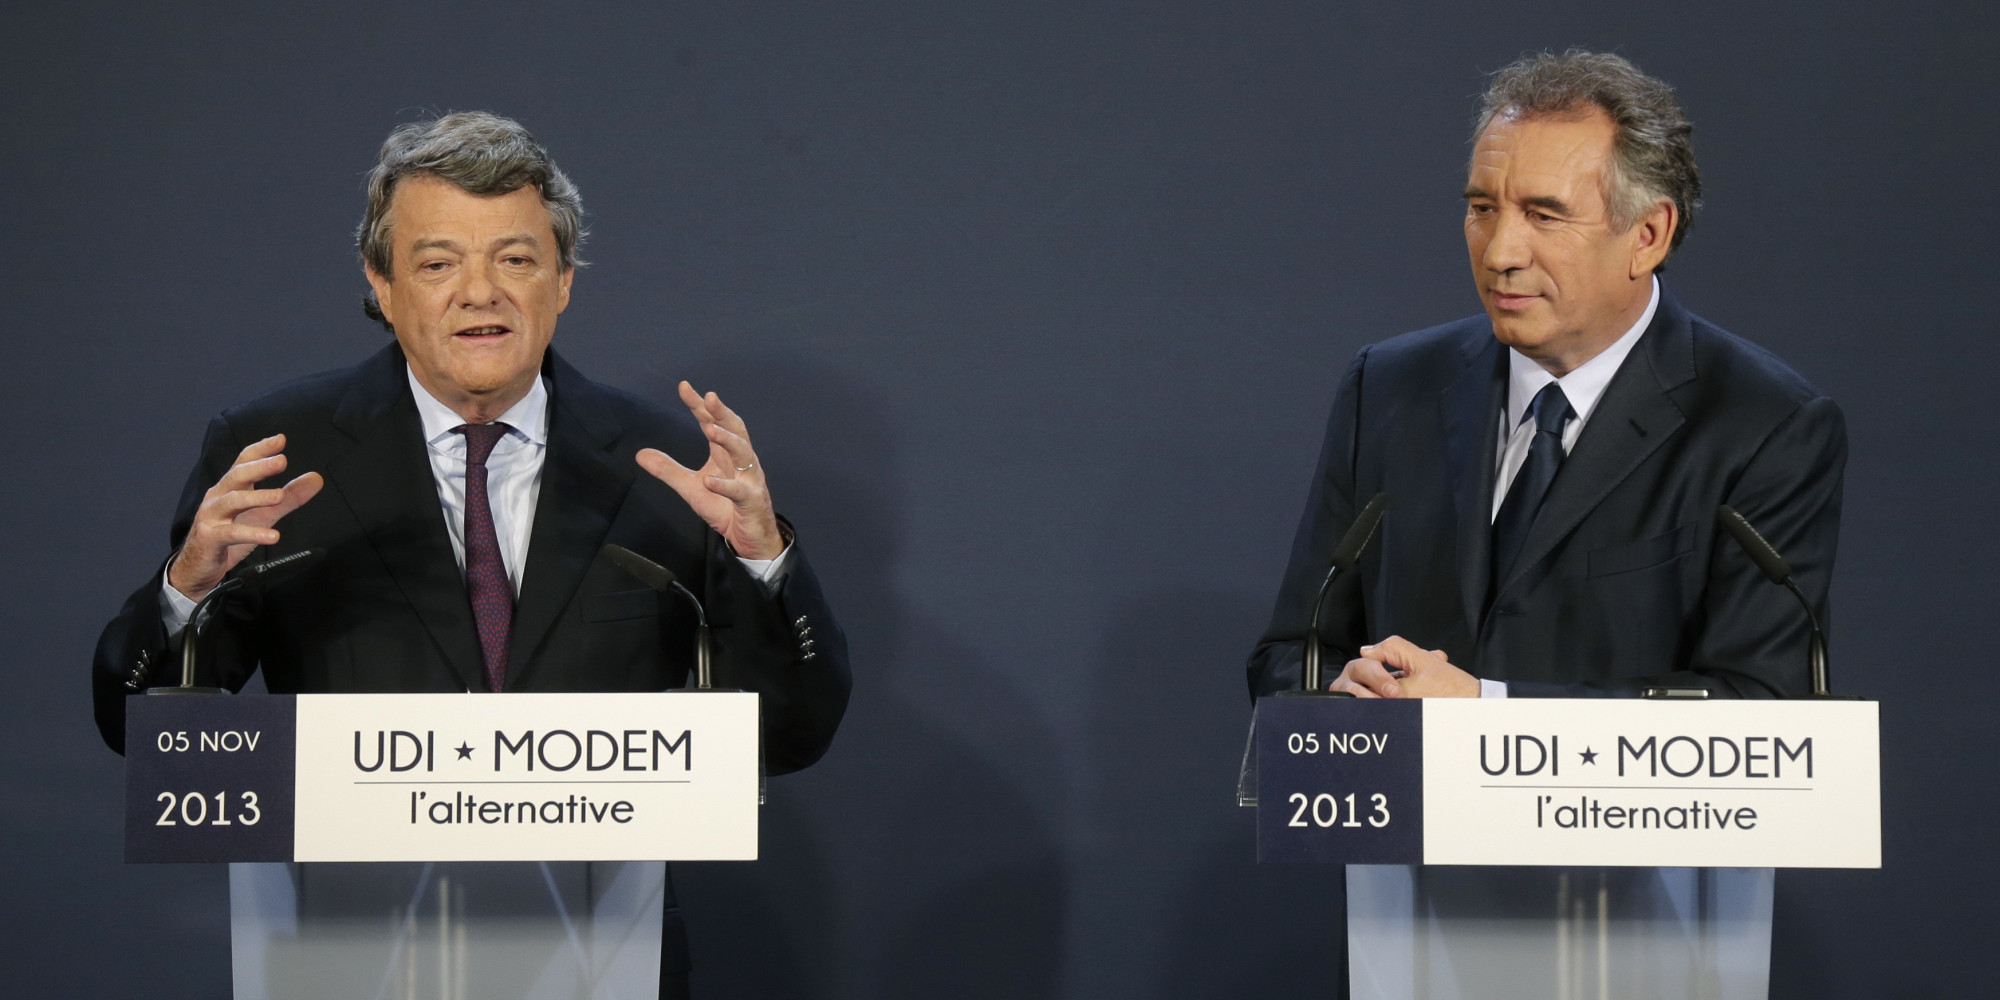 Head of the UDI party Borloo and MoDem party leader Bayrou attend a news conference to announce the union of their centrist parties ahead of 2014 municipal and Europea Parliament elections in Paris